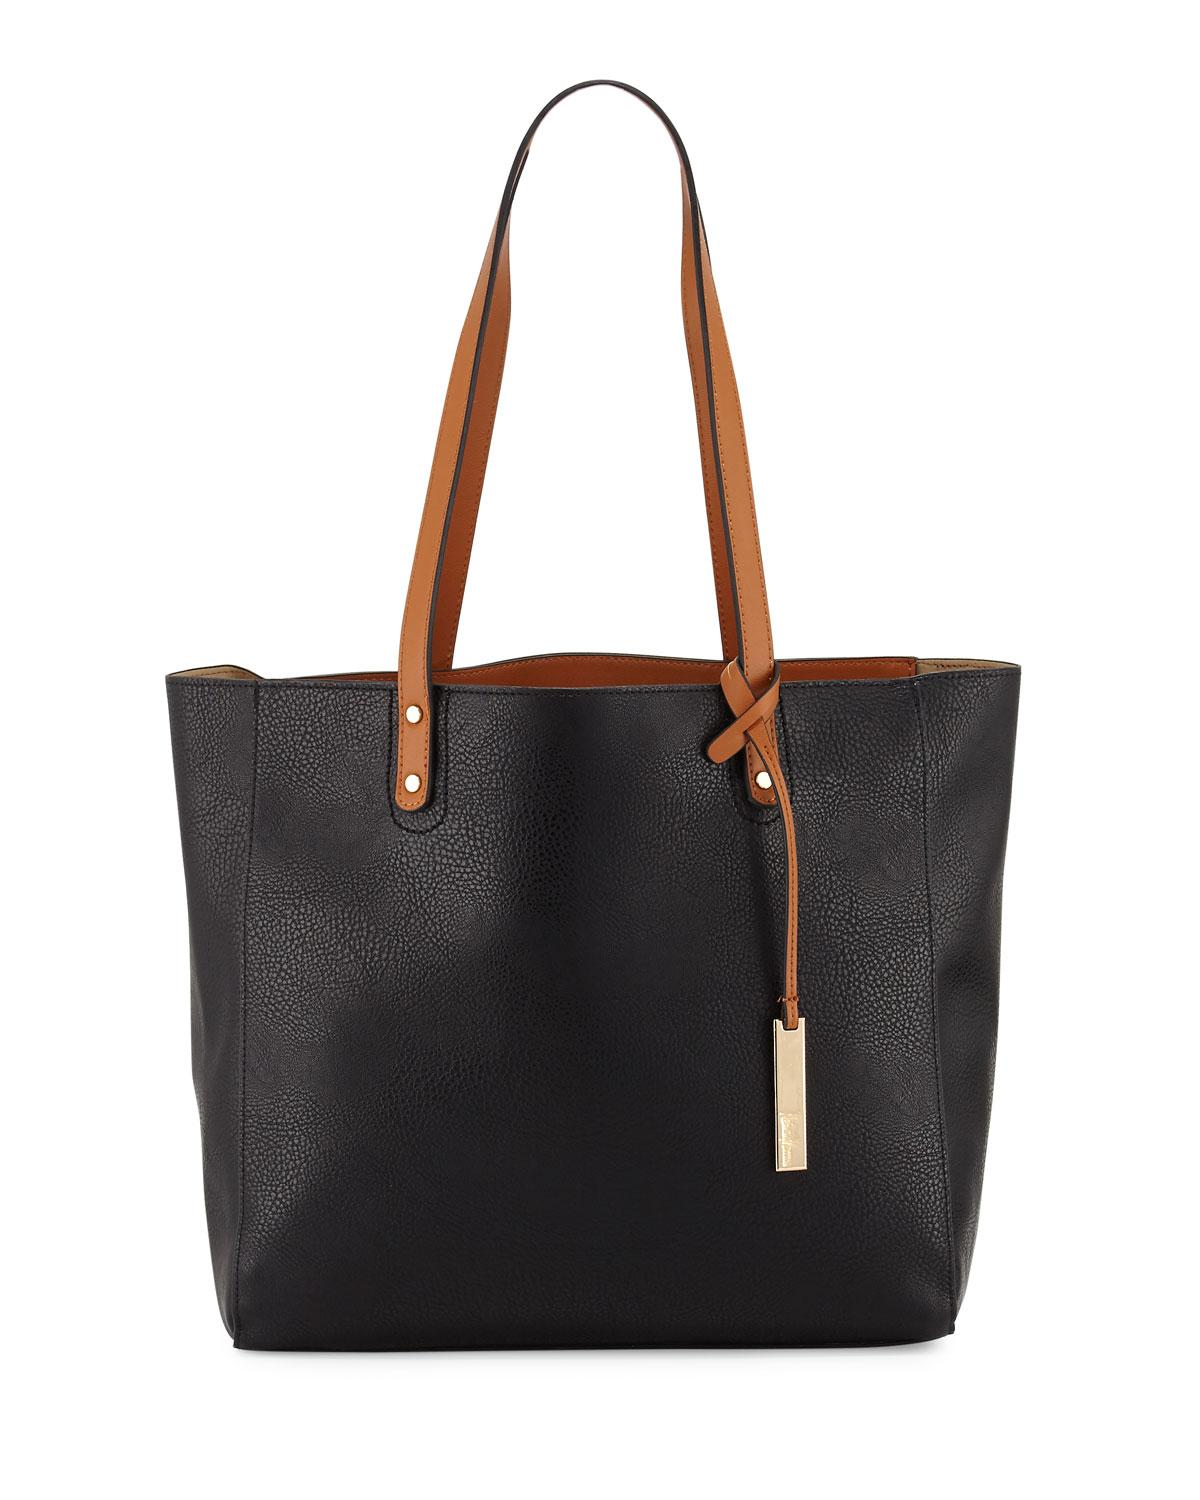 neiman textured leather organizer tote bag in